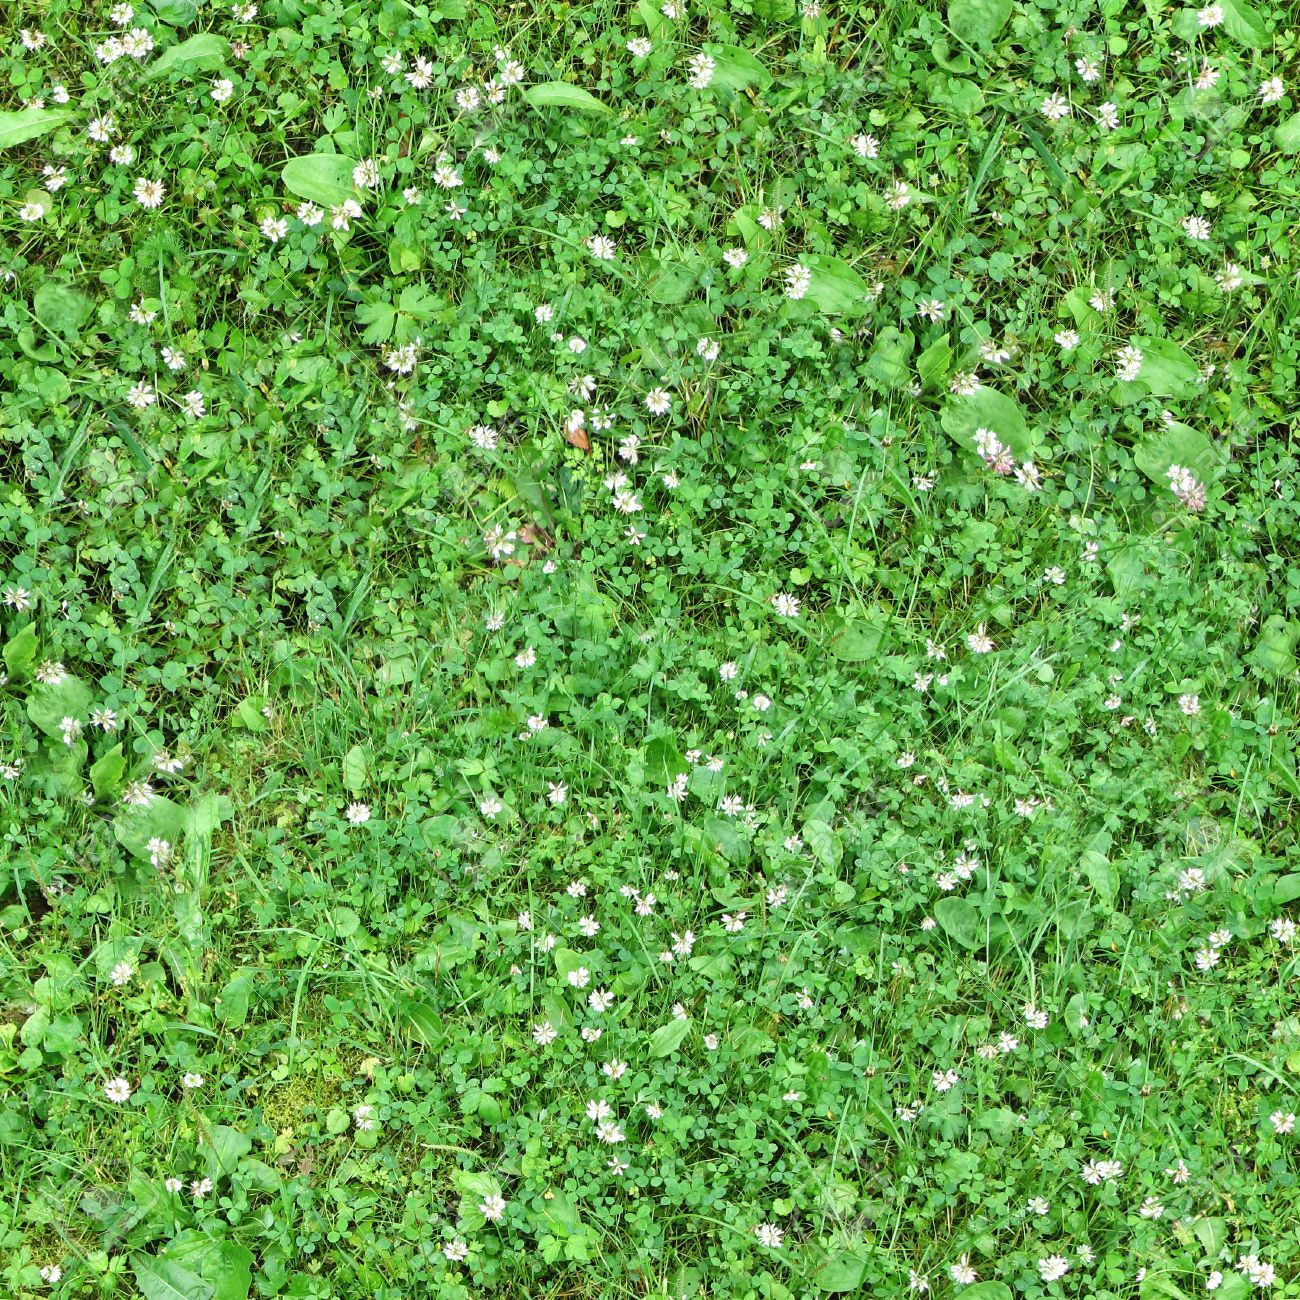 Seamless green grass background with clover leaves and small pink flowers Stock Photo - 21426614